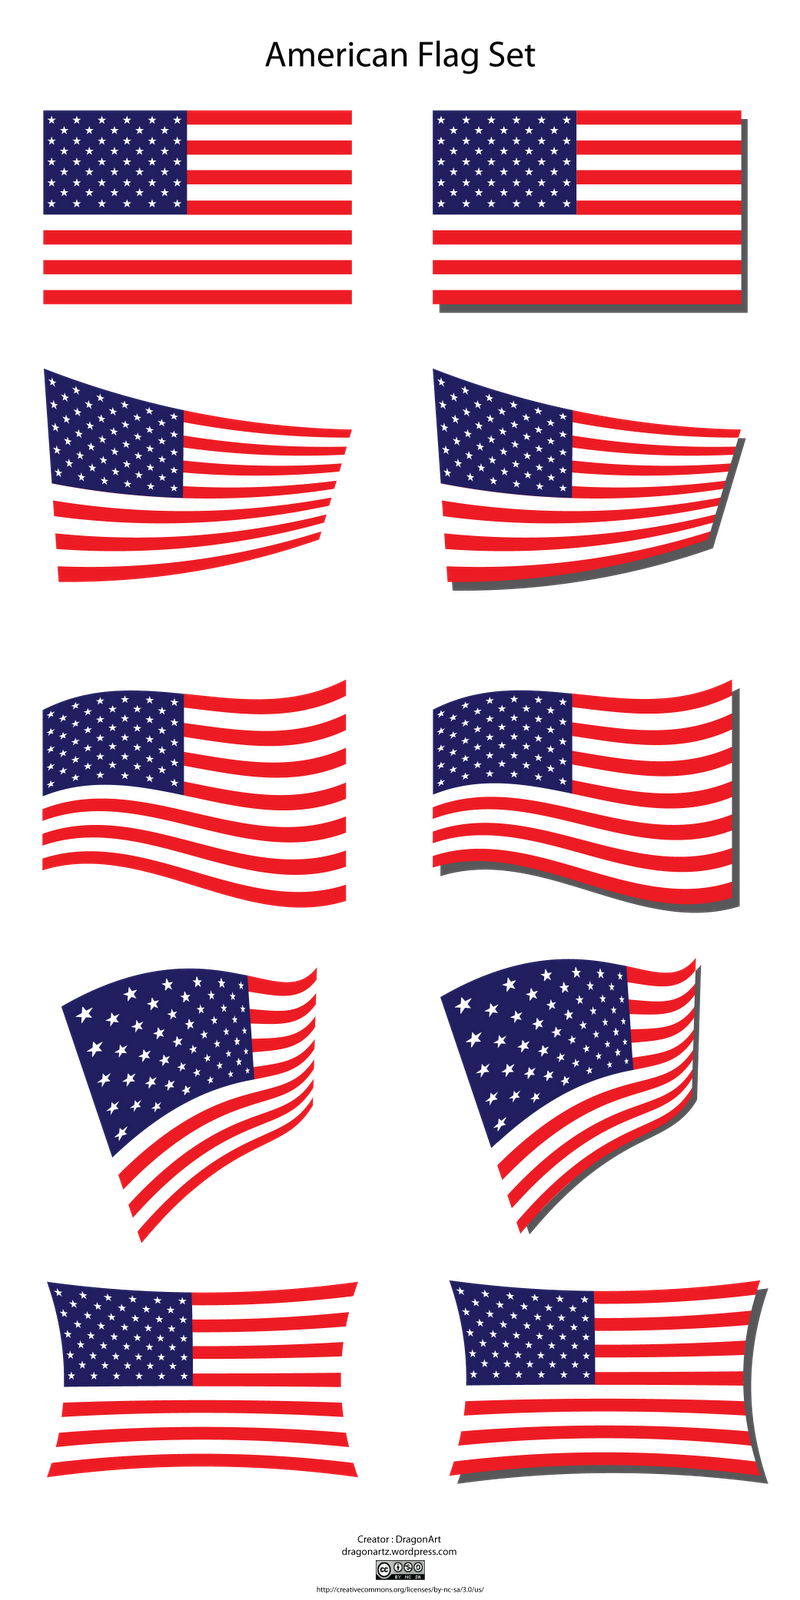 American flag clipart vector free image transparent Us flag clipart vector - WikiClipArt image transparent